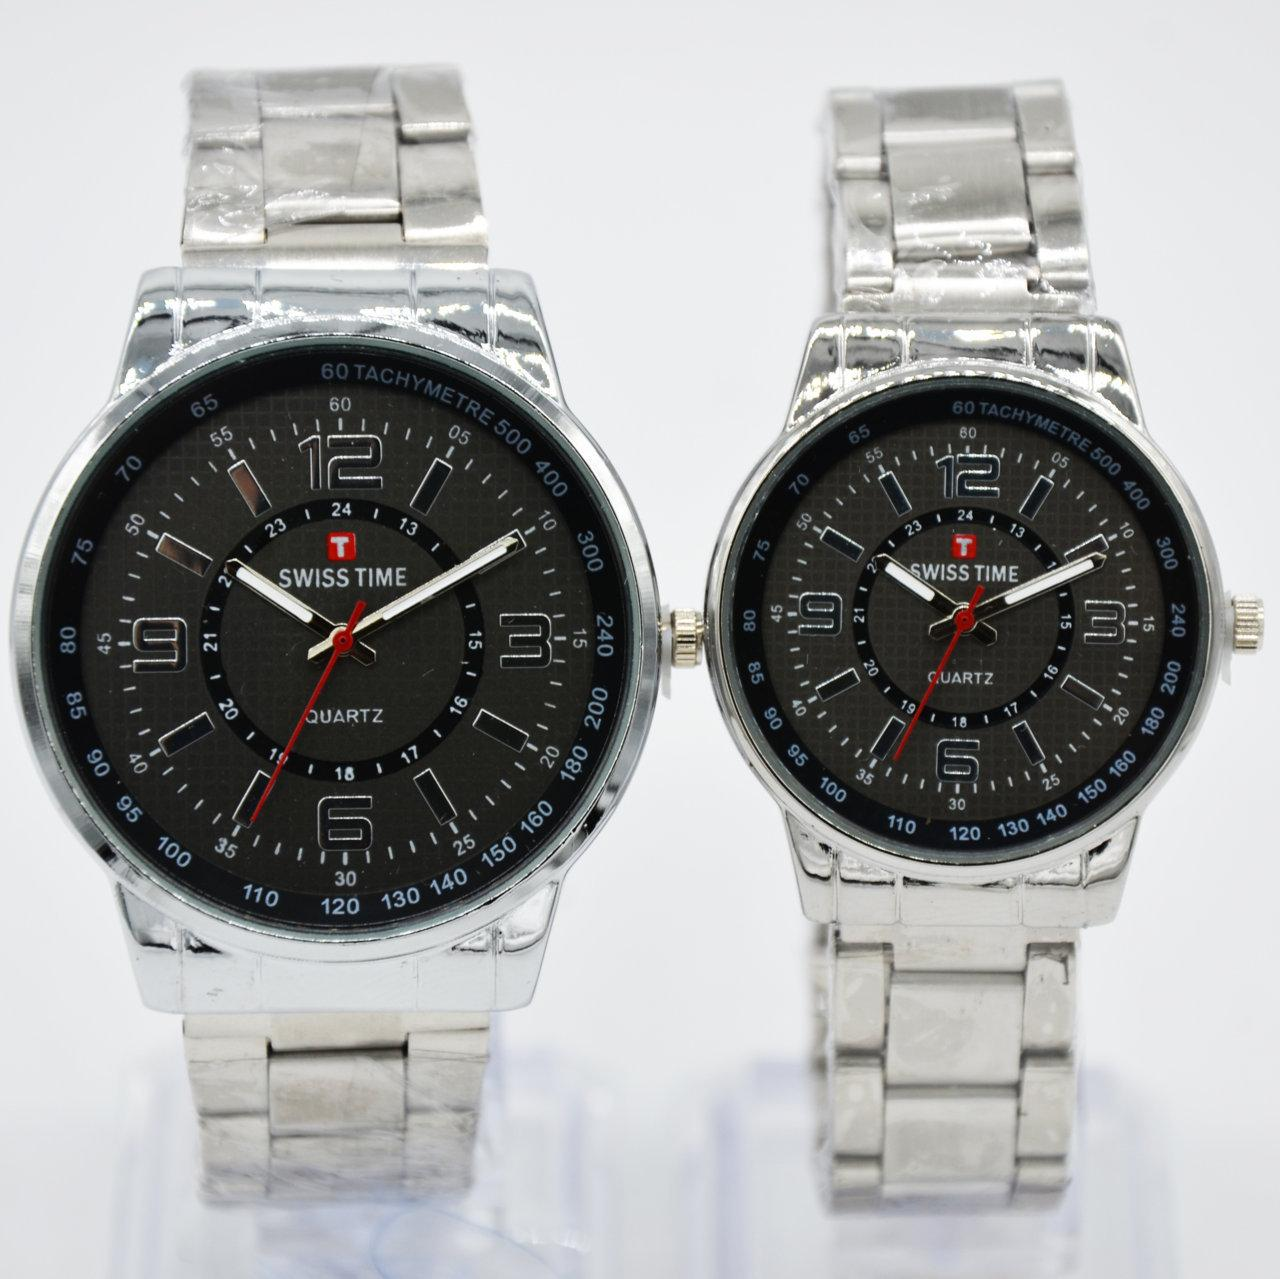 Swiss Army/Time Jam tangan Pria&Wanita (Couple) - rantai stainless S2217